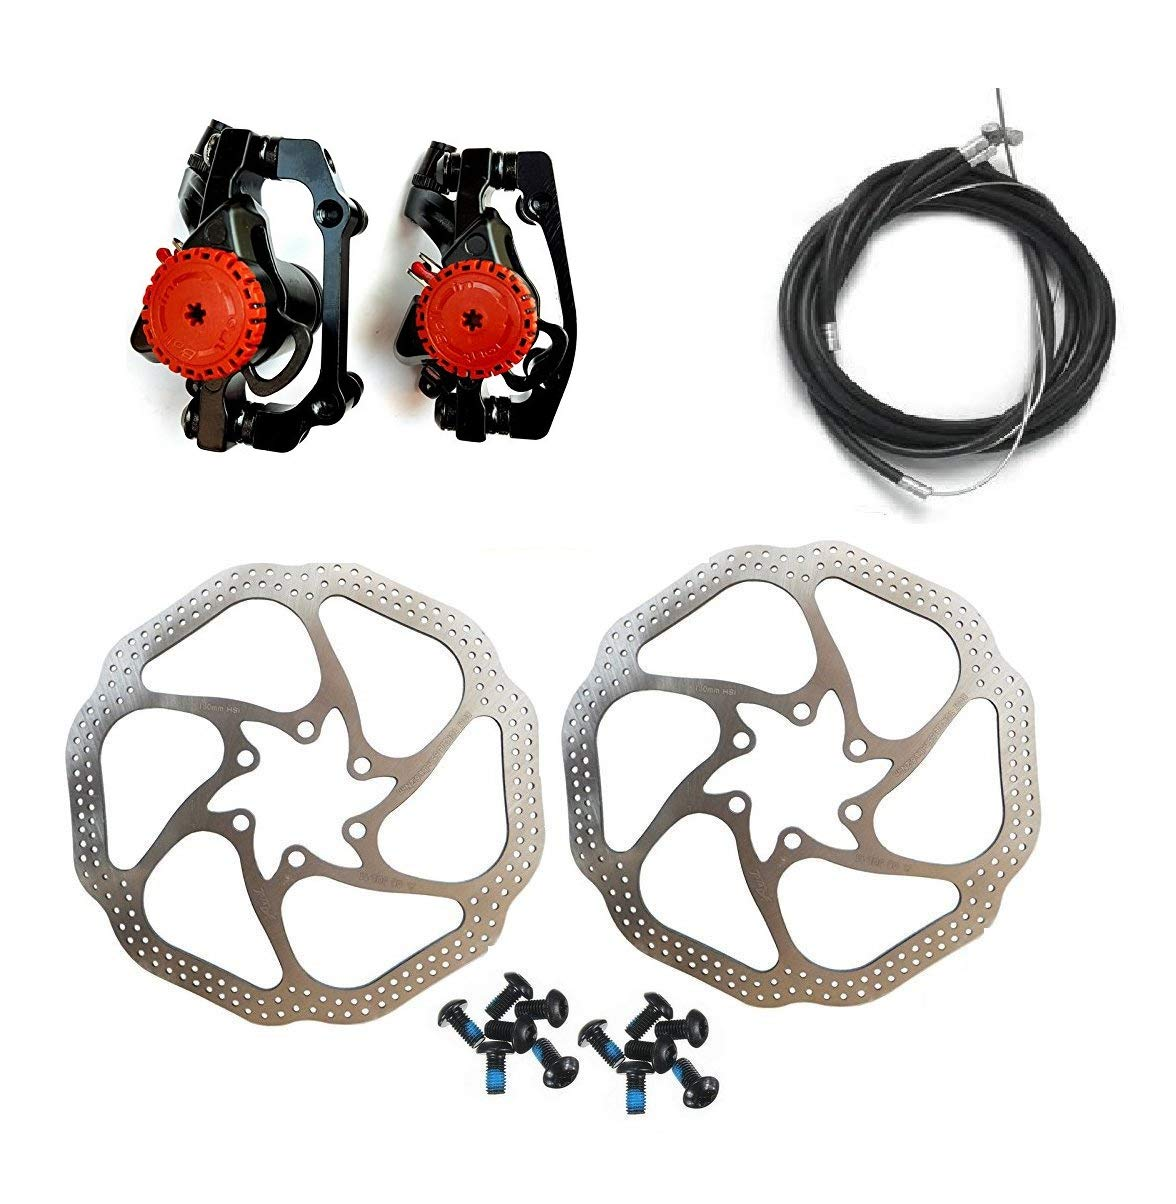 BlueSunshine HS1 Bike Disc Brake Kit - Mountain Bicycle Bike Mechanical Front and Rear 160mm Caliper Rotor BB5 BB7 Whit Bolts and Cable (BB5) by BlueSunshine